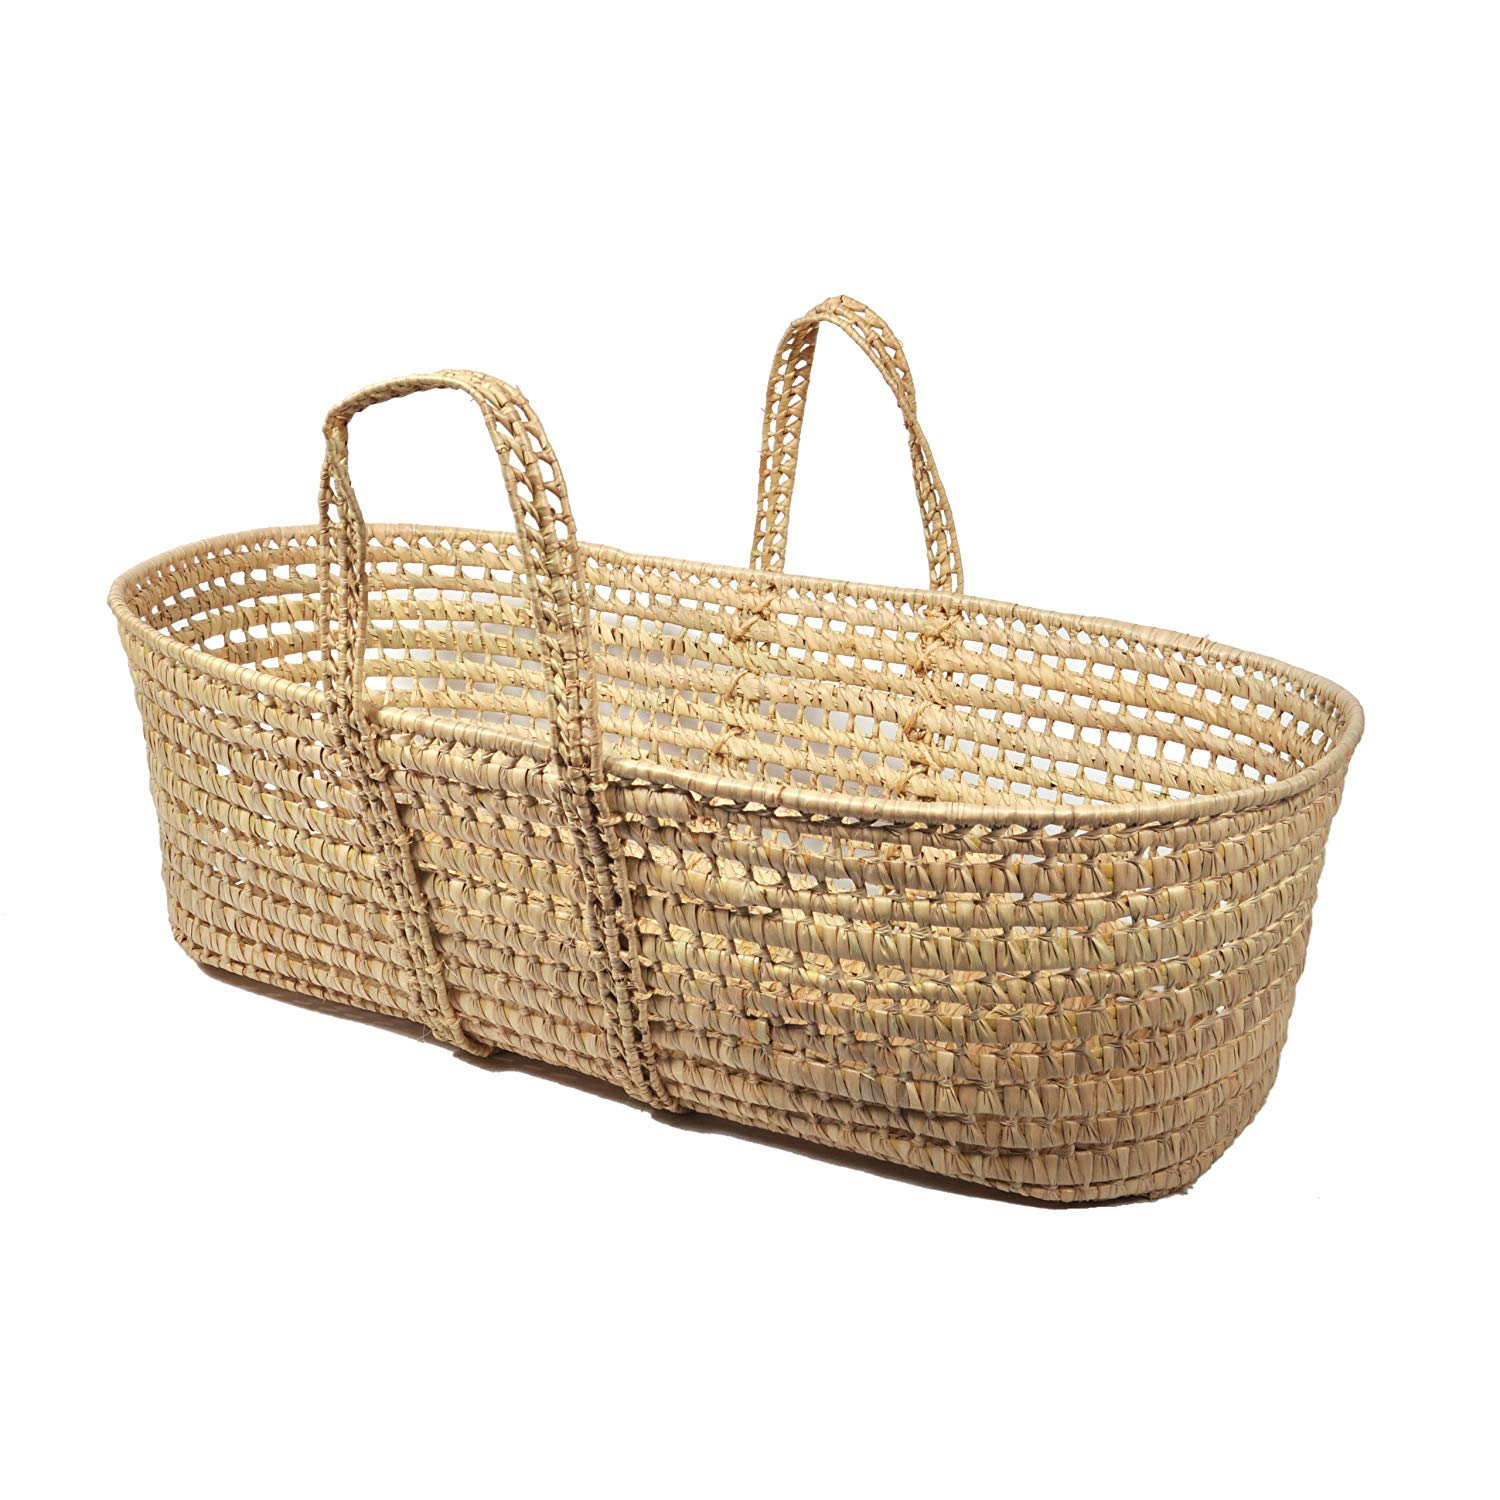 All Natural Organic Moses Basket, Natural palm leaves: Made of natural, hand-woven palm leaf By Tadpoles